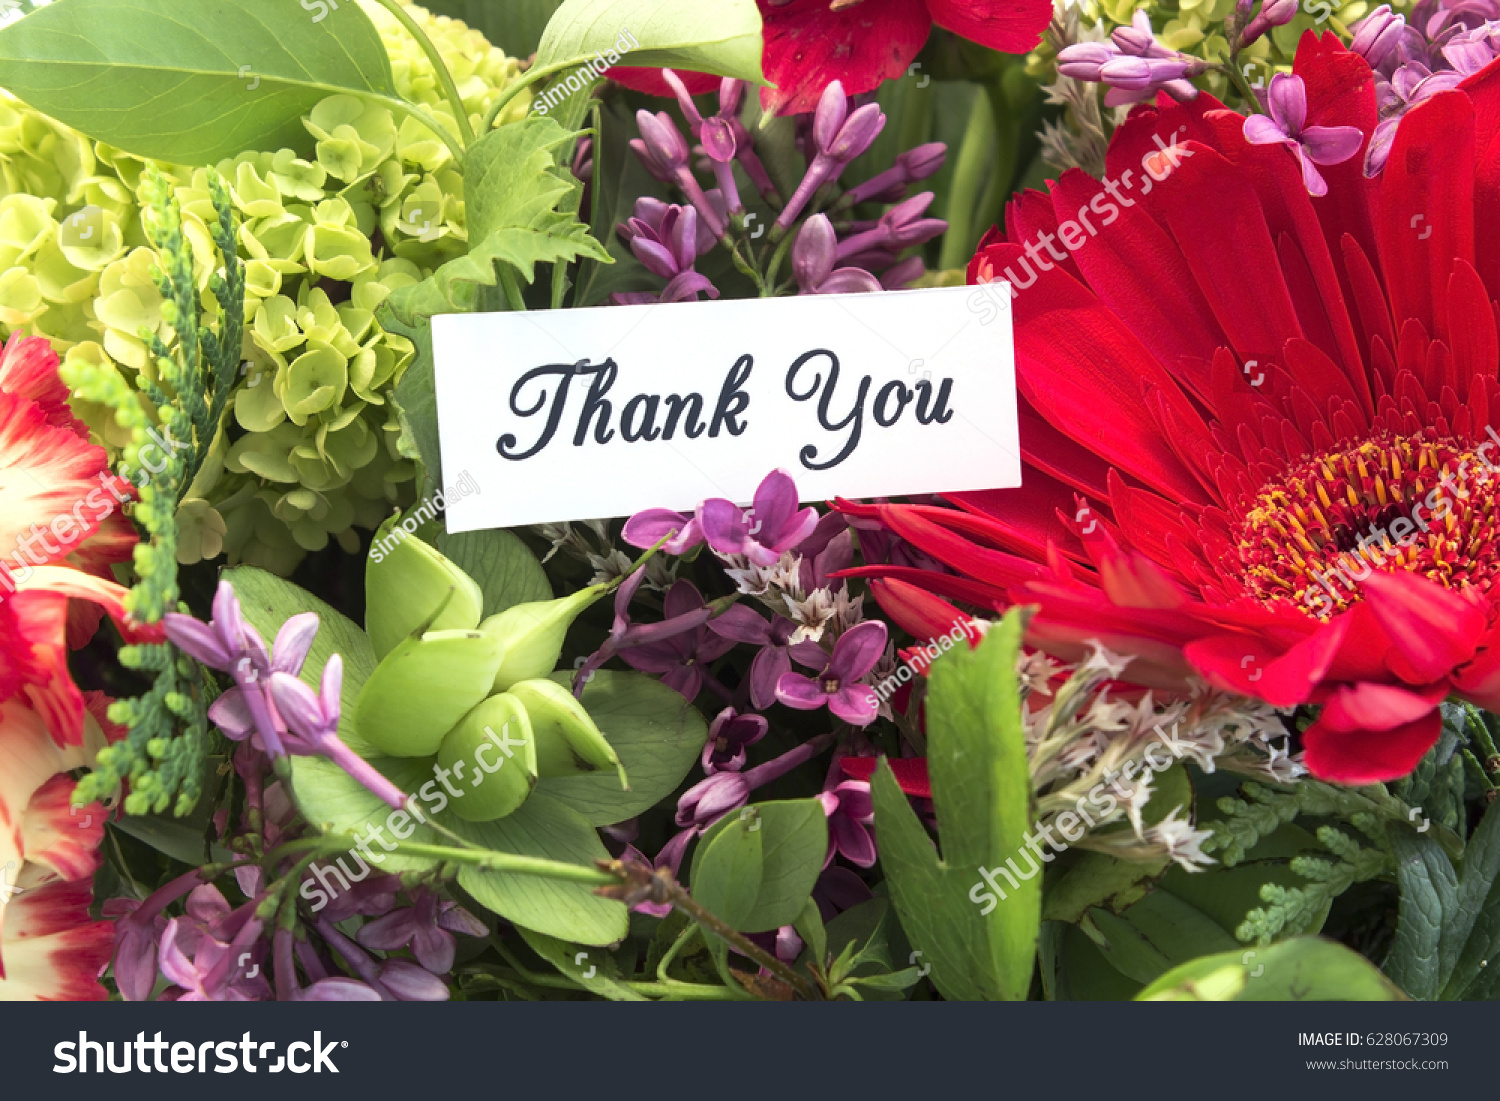 Thank You Card Bouquet Spring Flowers Stock Photo (100% Legal ...